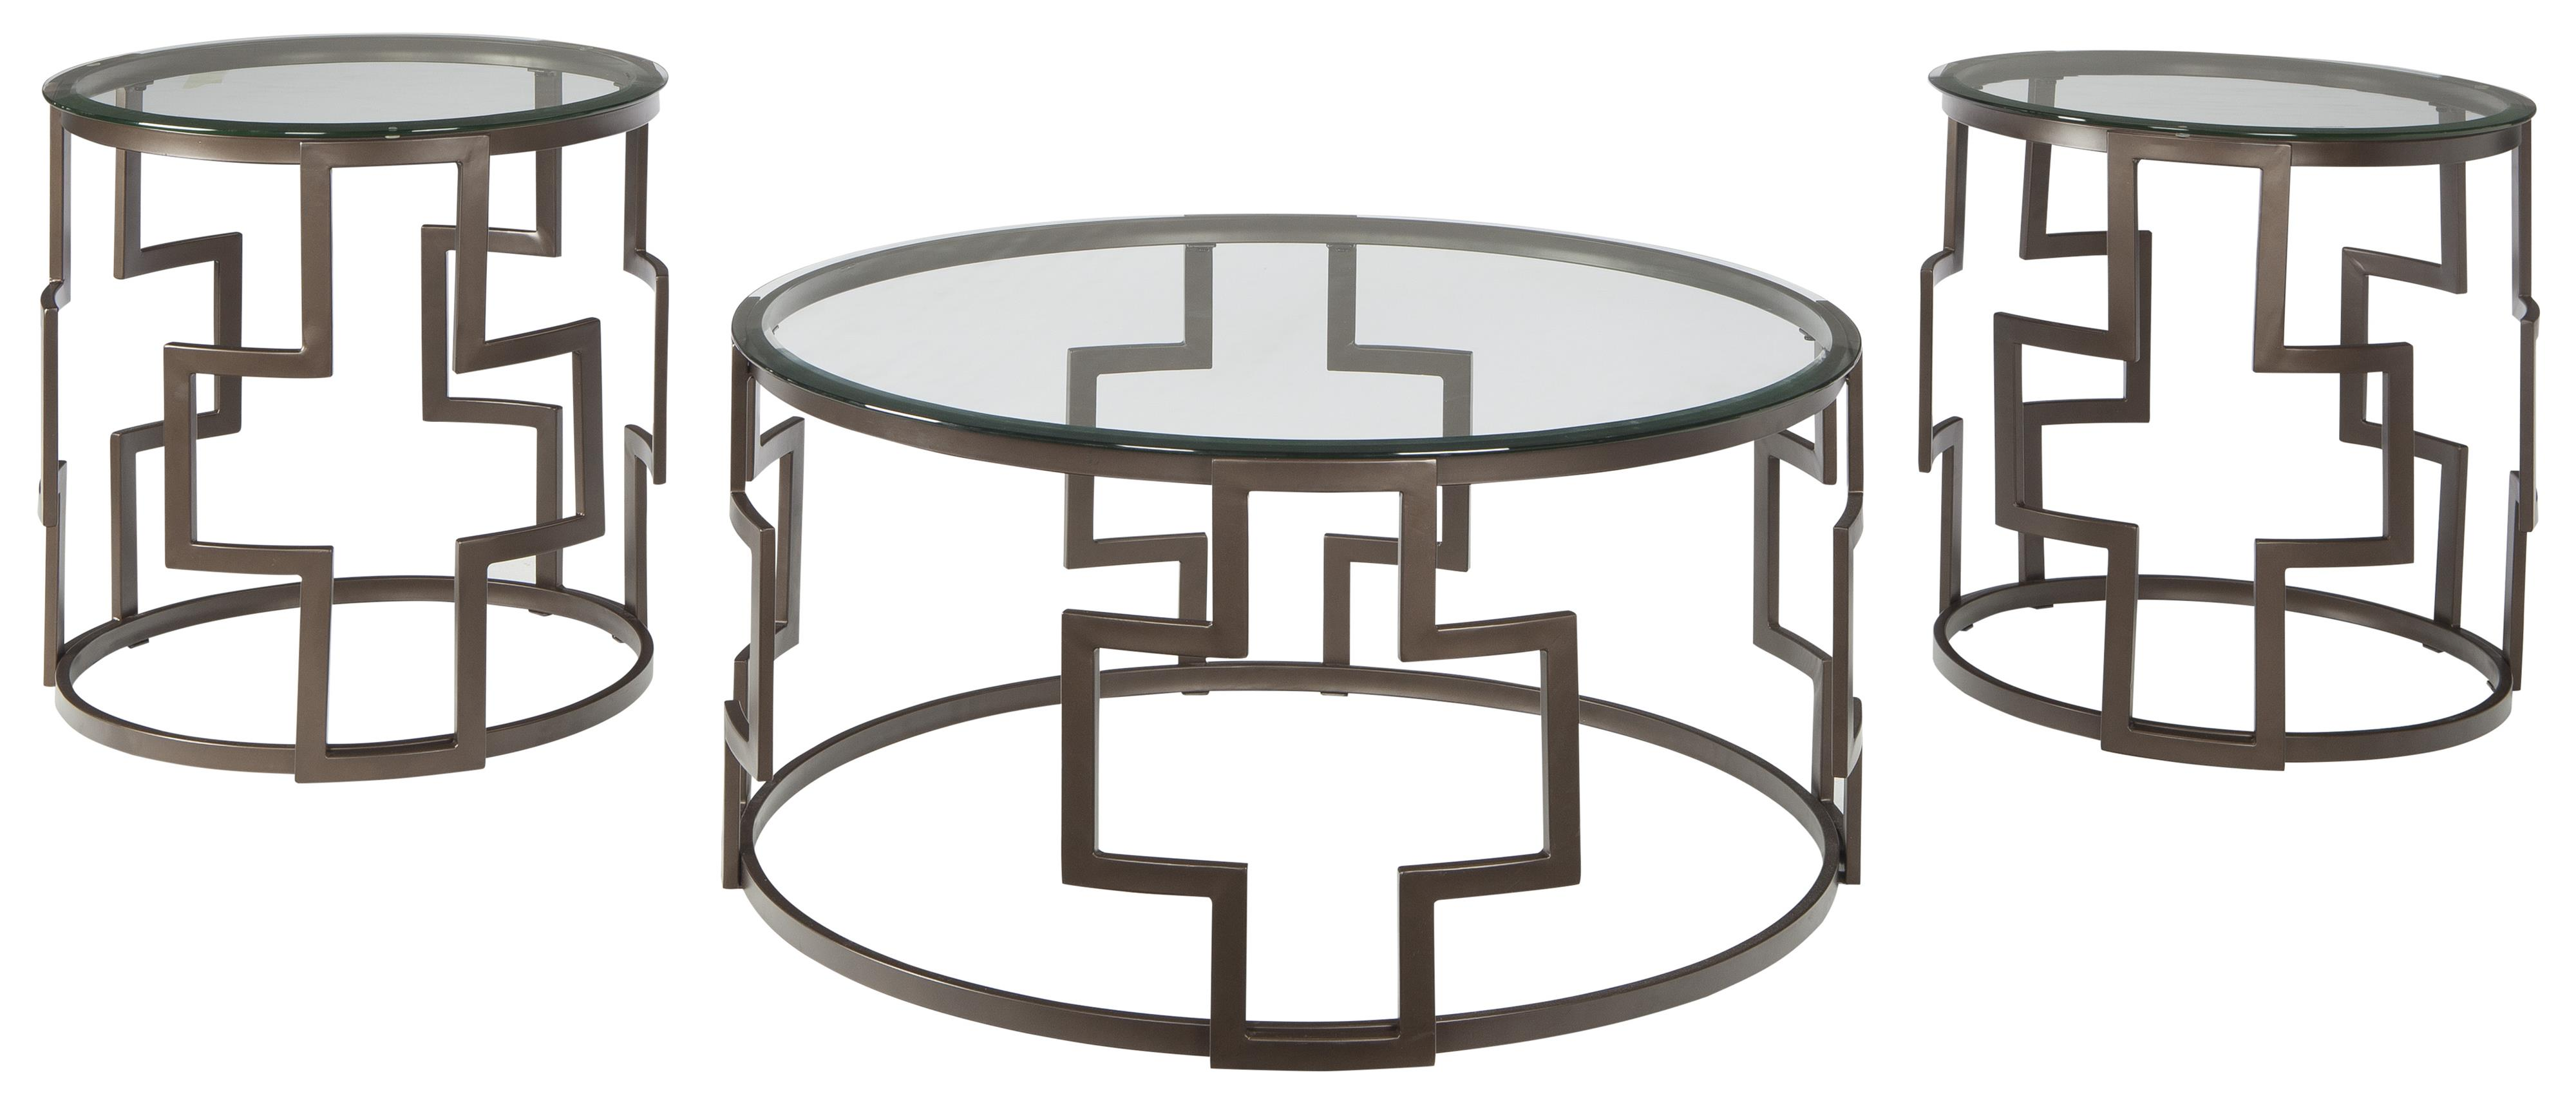 Frostine Occasional Table Set by Signature Design by Ashley at Northeast Factory Direct